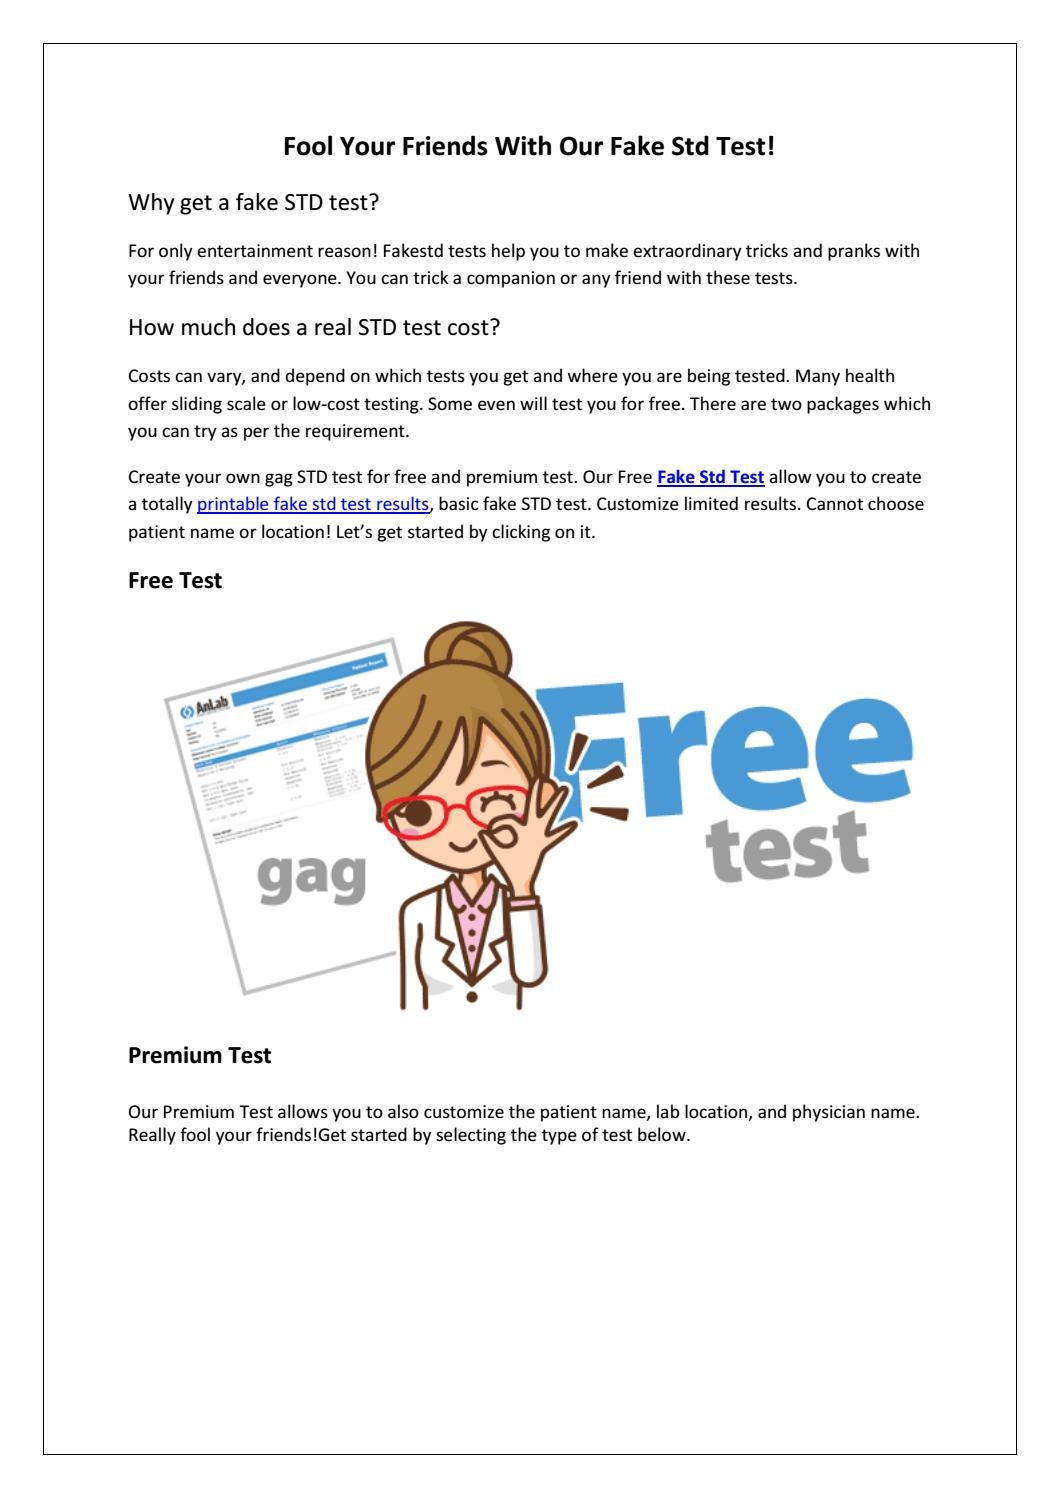 photo relating to Printable Fake Std Test Results known as Fakestdtest by way of Fakestd Try - issuu